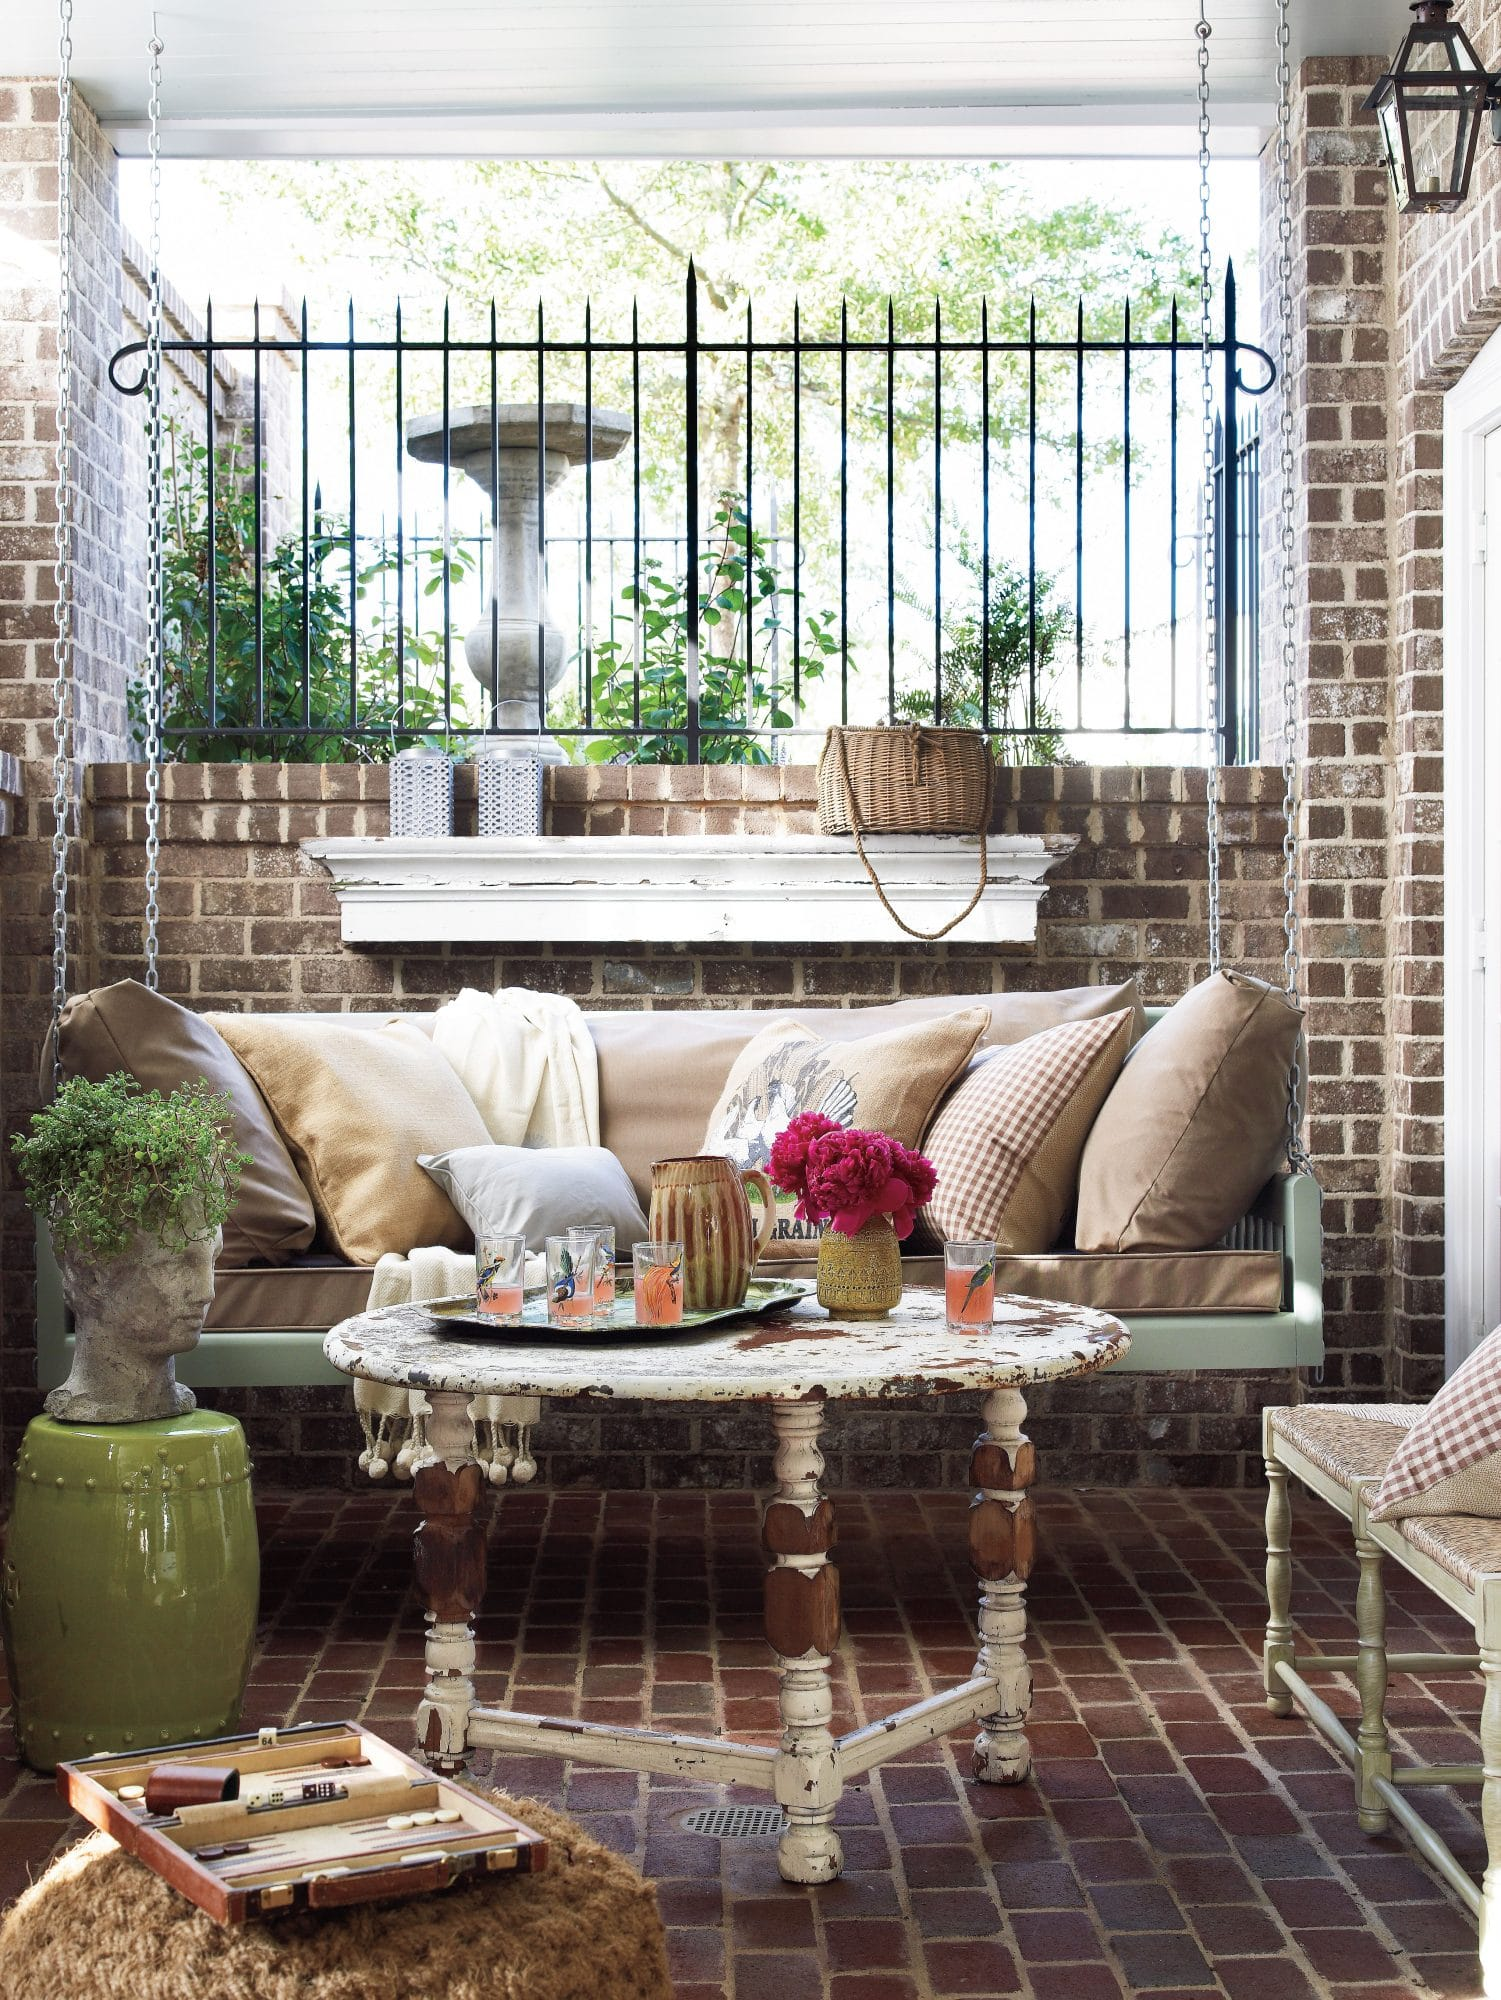 Best Vintage Porch Decor Ideas #4